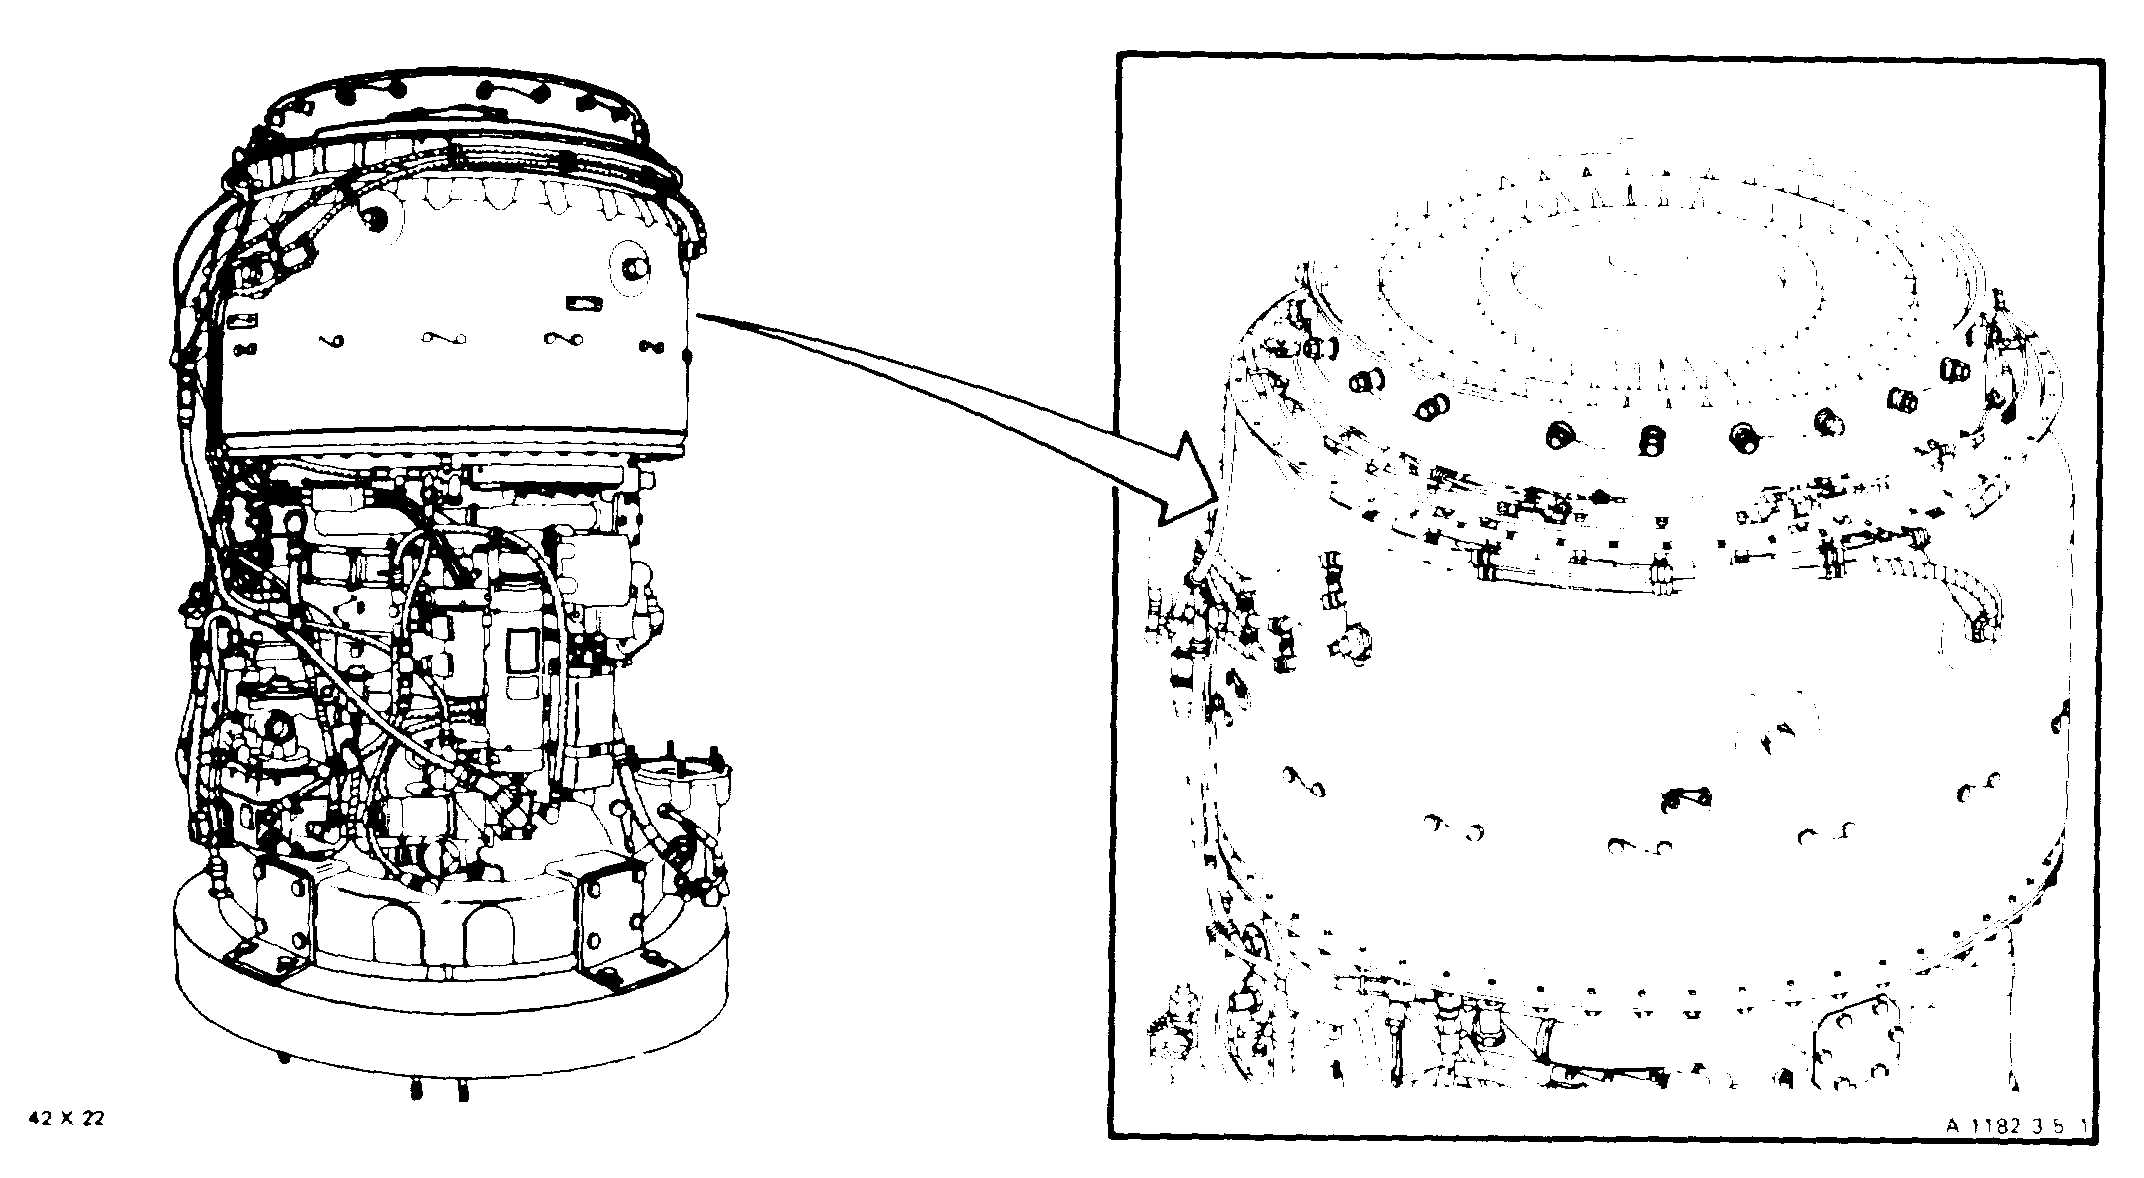 Section II. COMBUSTION SECTION AND POWER TURBINE